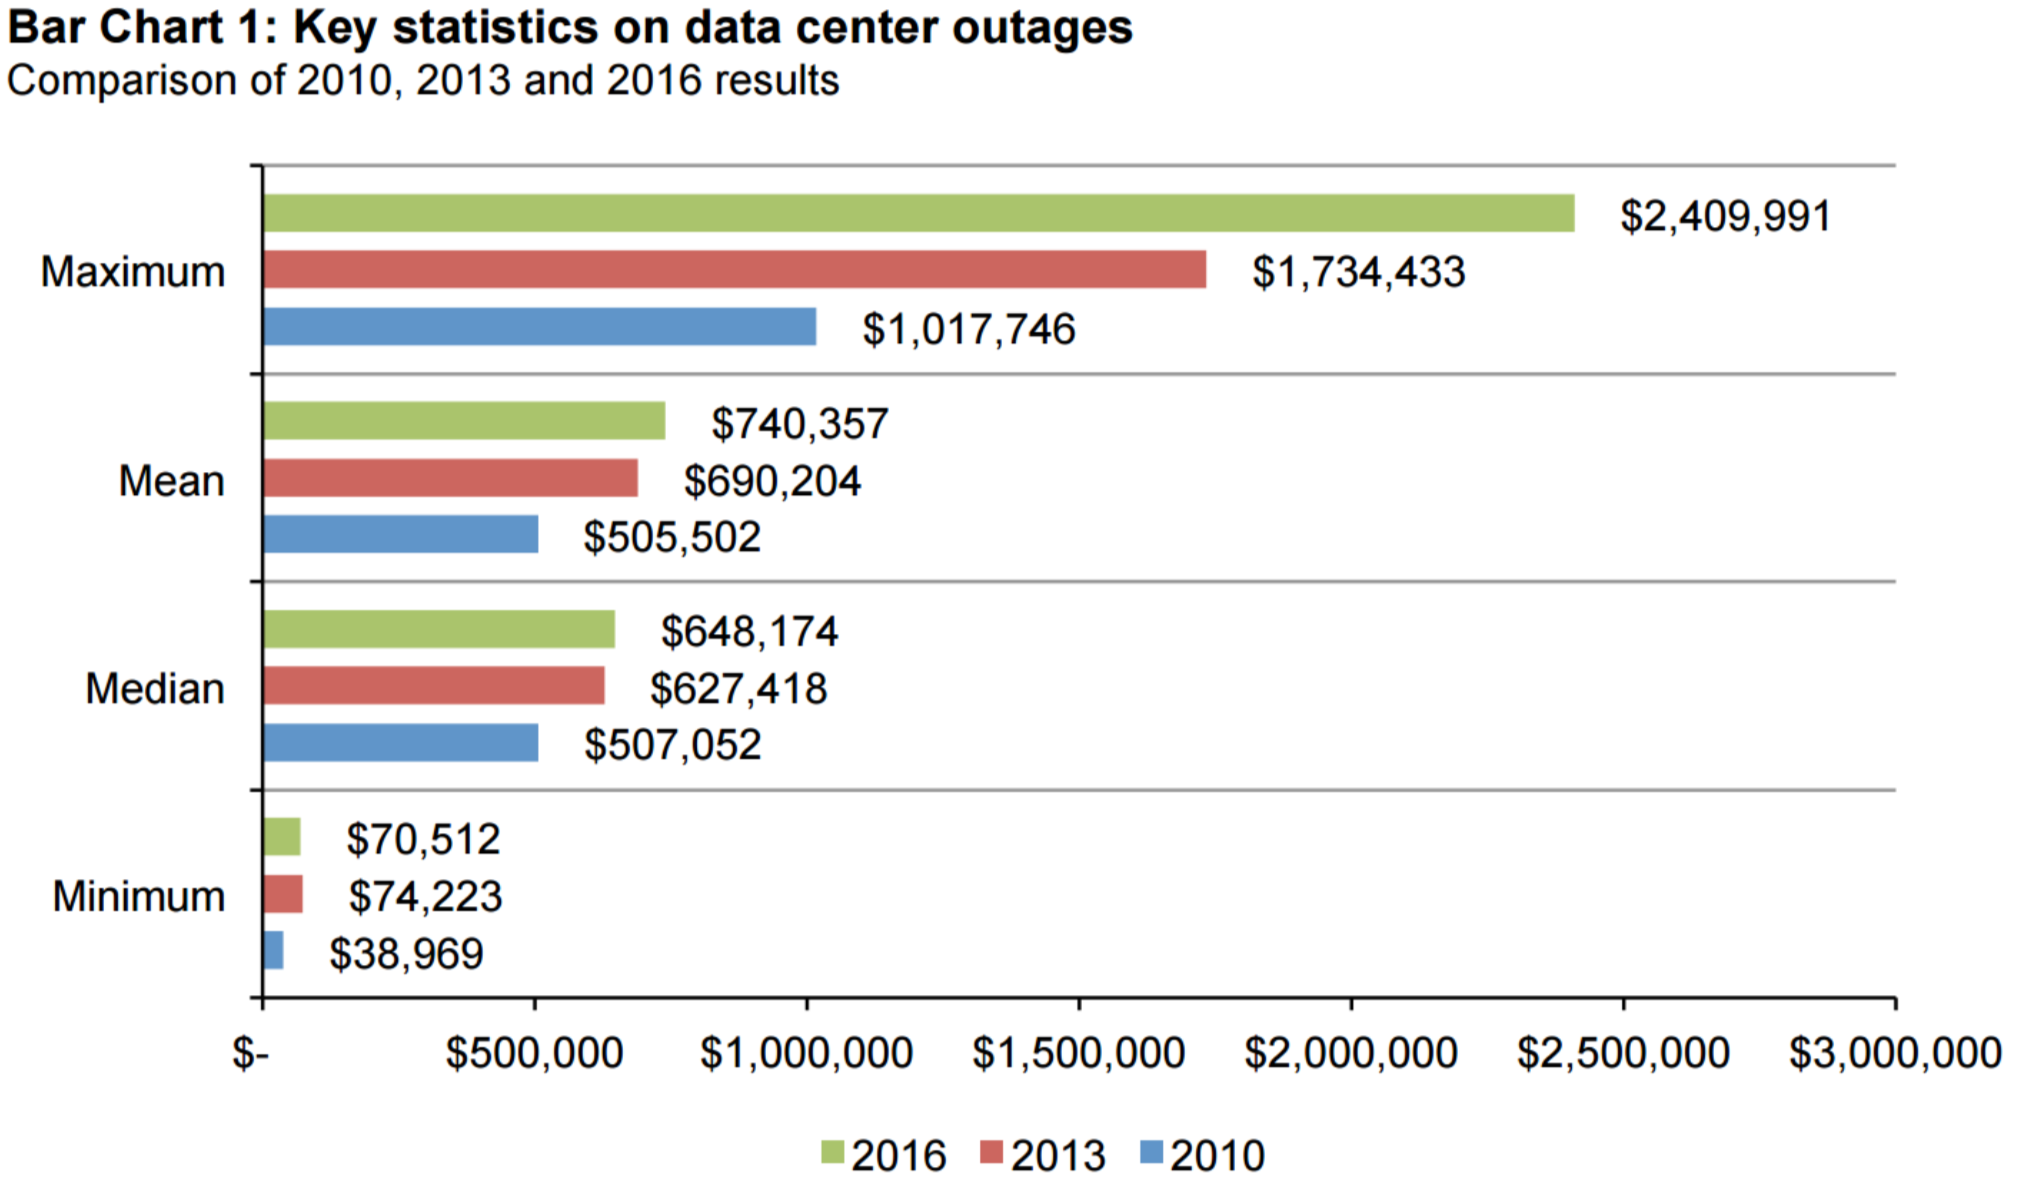 Key statistics on data centers outages